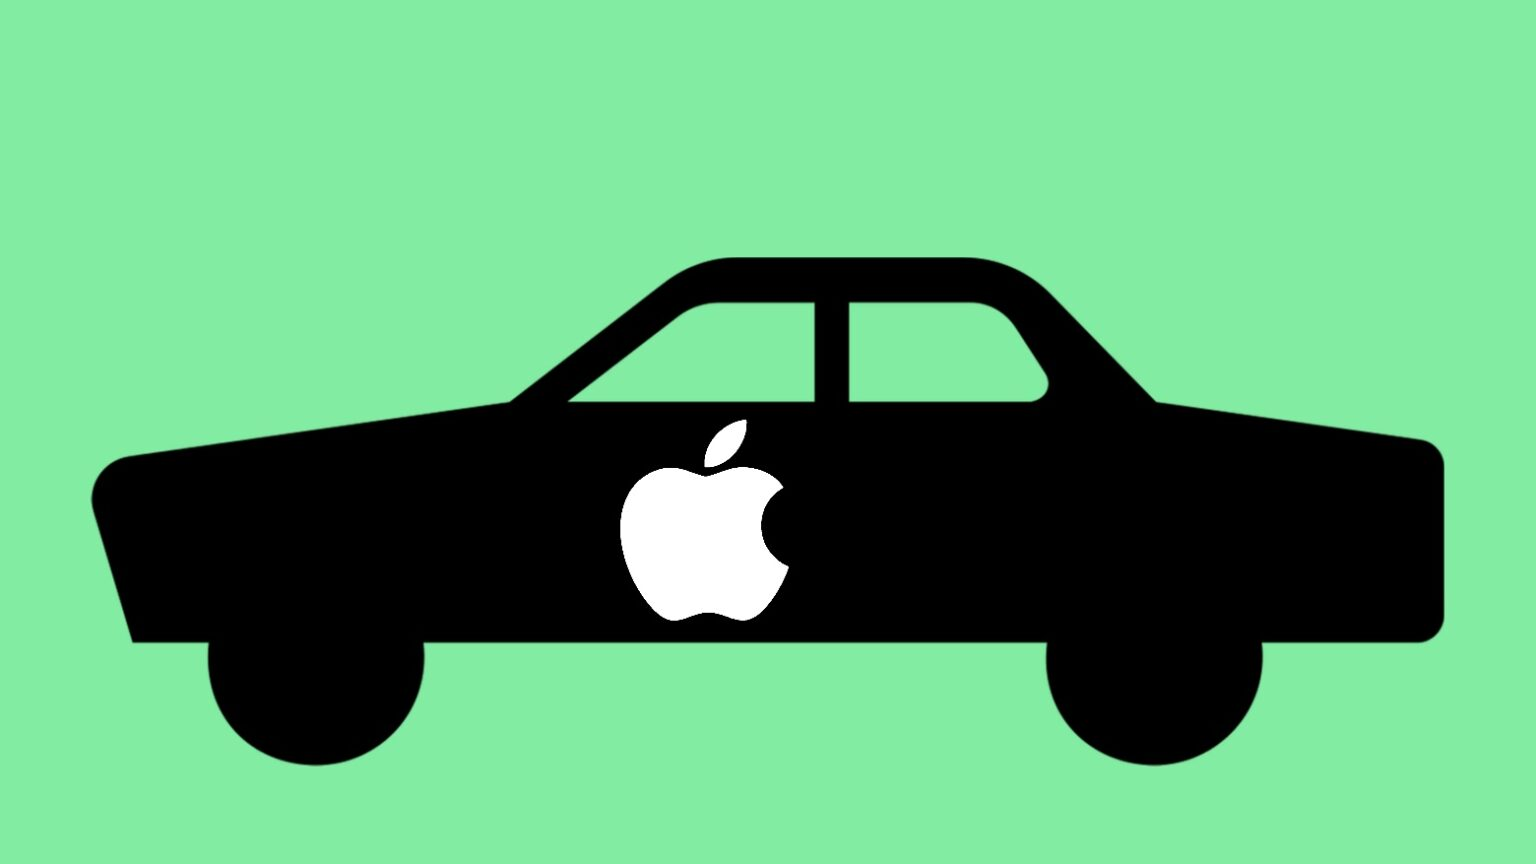 The Apple Car won't look anything like this.